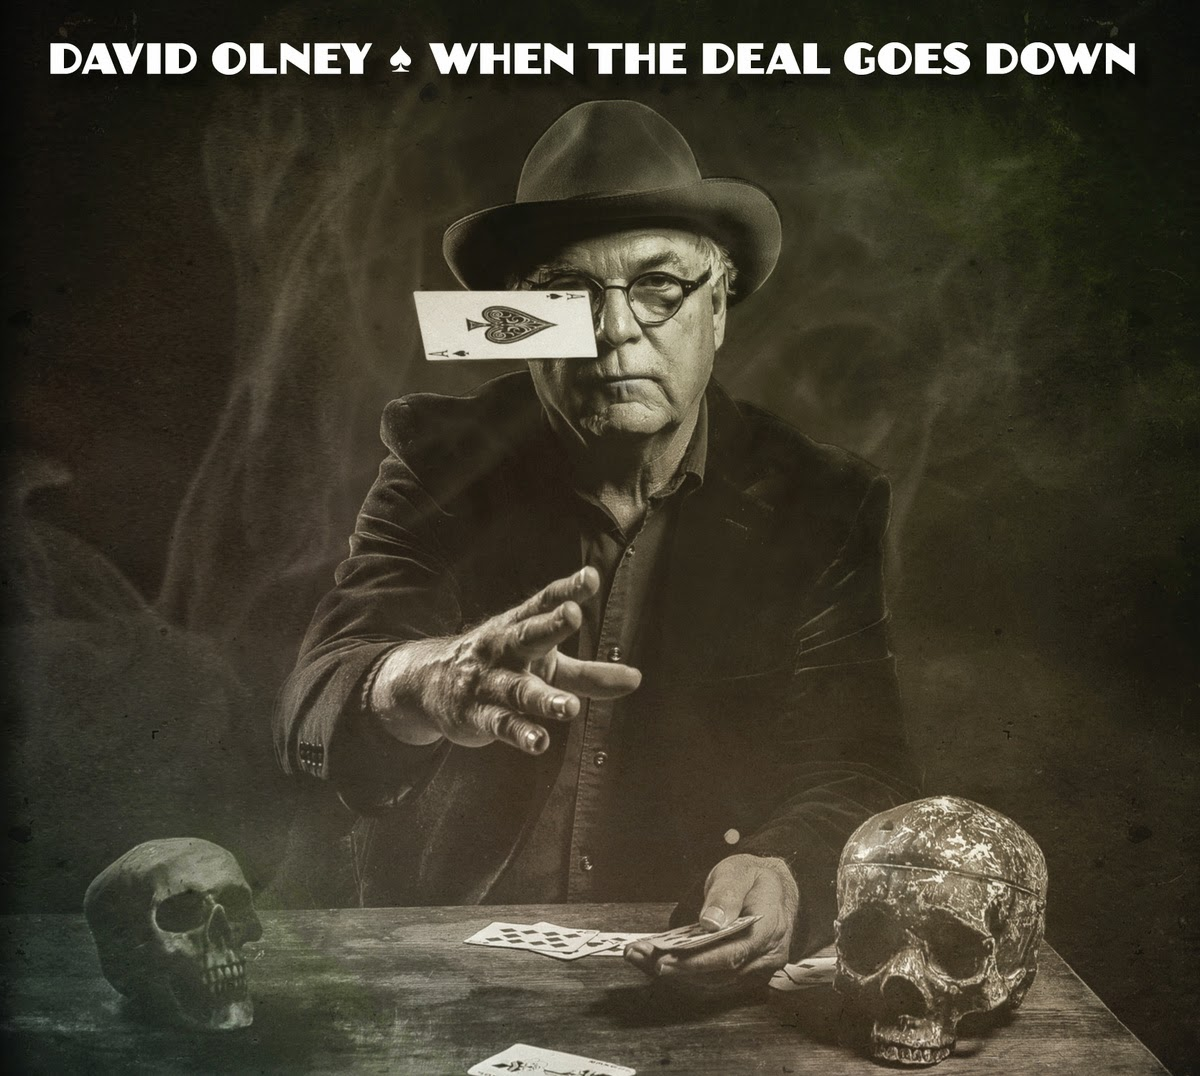 David Olney's When The Deal Goes Down